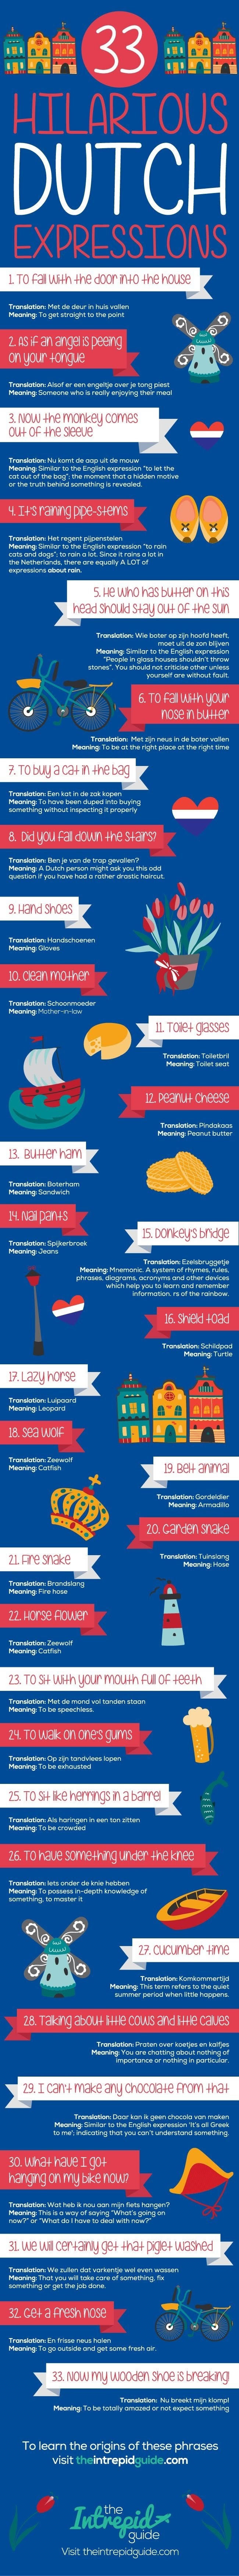 33 Eye-Wateringly Funny Dutch Phrases and Idioms #infographic